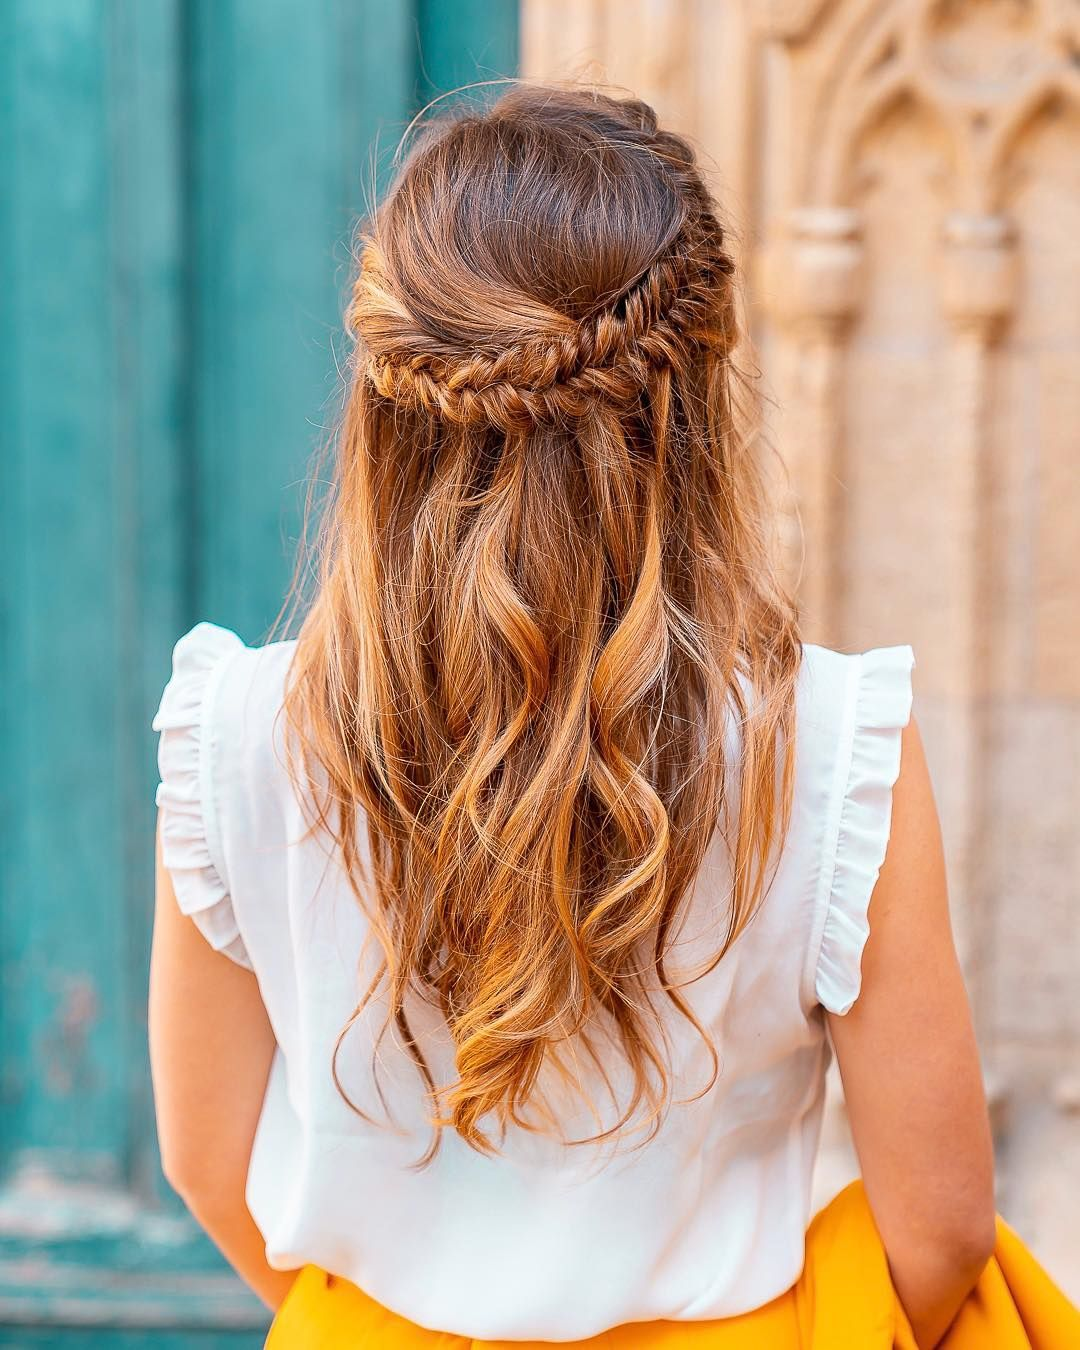 Ma Jolie Coiffure Pour Accompagner Une Tenue De Mariage Chloe Happy Blogger Lrds Chloe Penderie Hairstyles Hairstylesforwomen Weddinghairstyles We